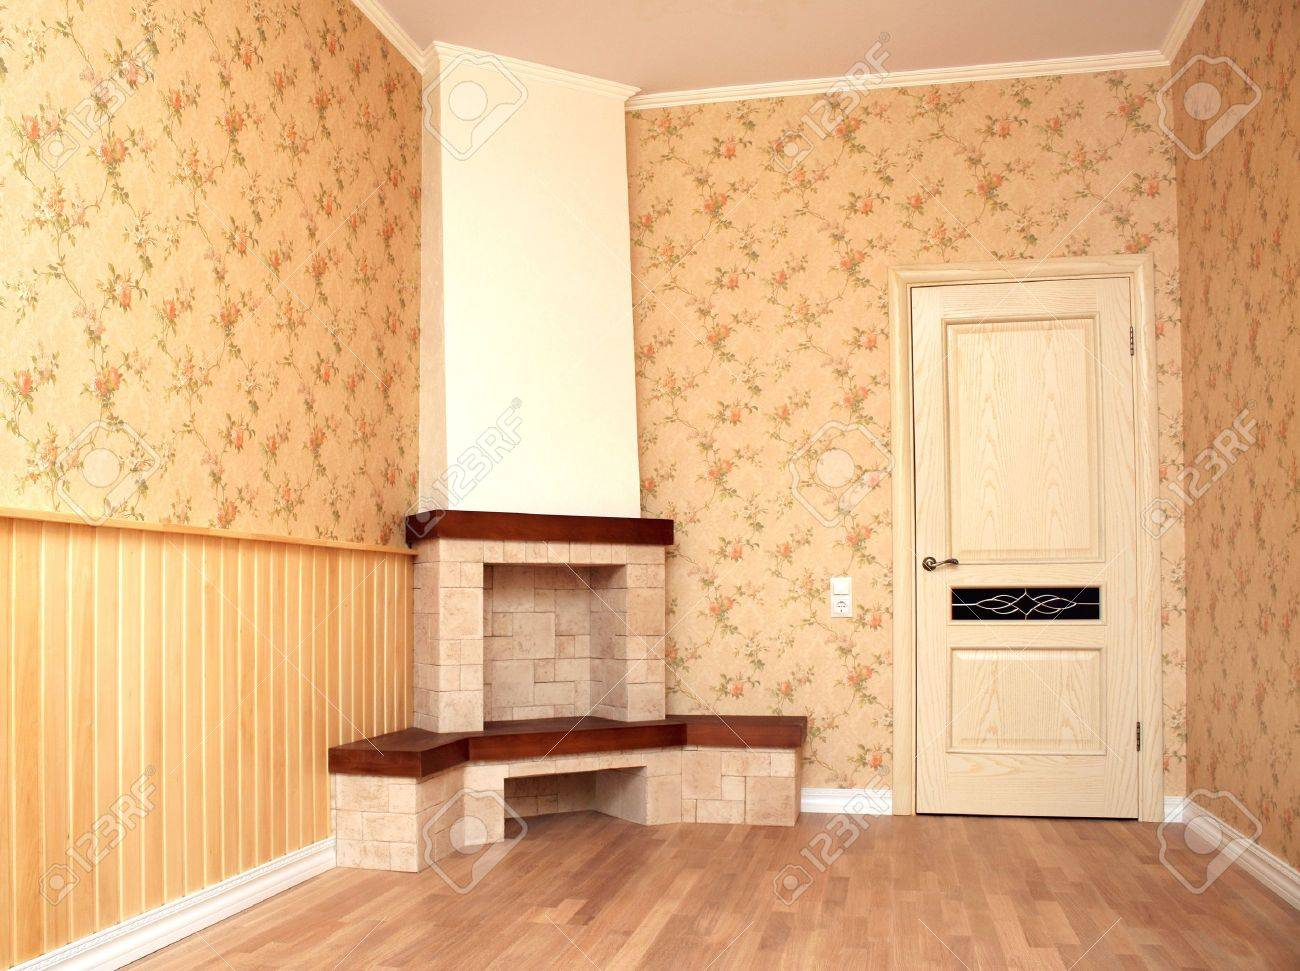 Interior of a room with a fireplace. Retro style Stock Photo - 11967867